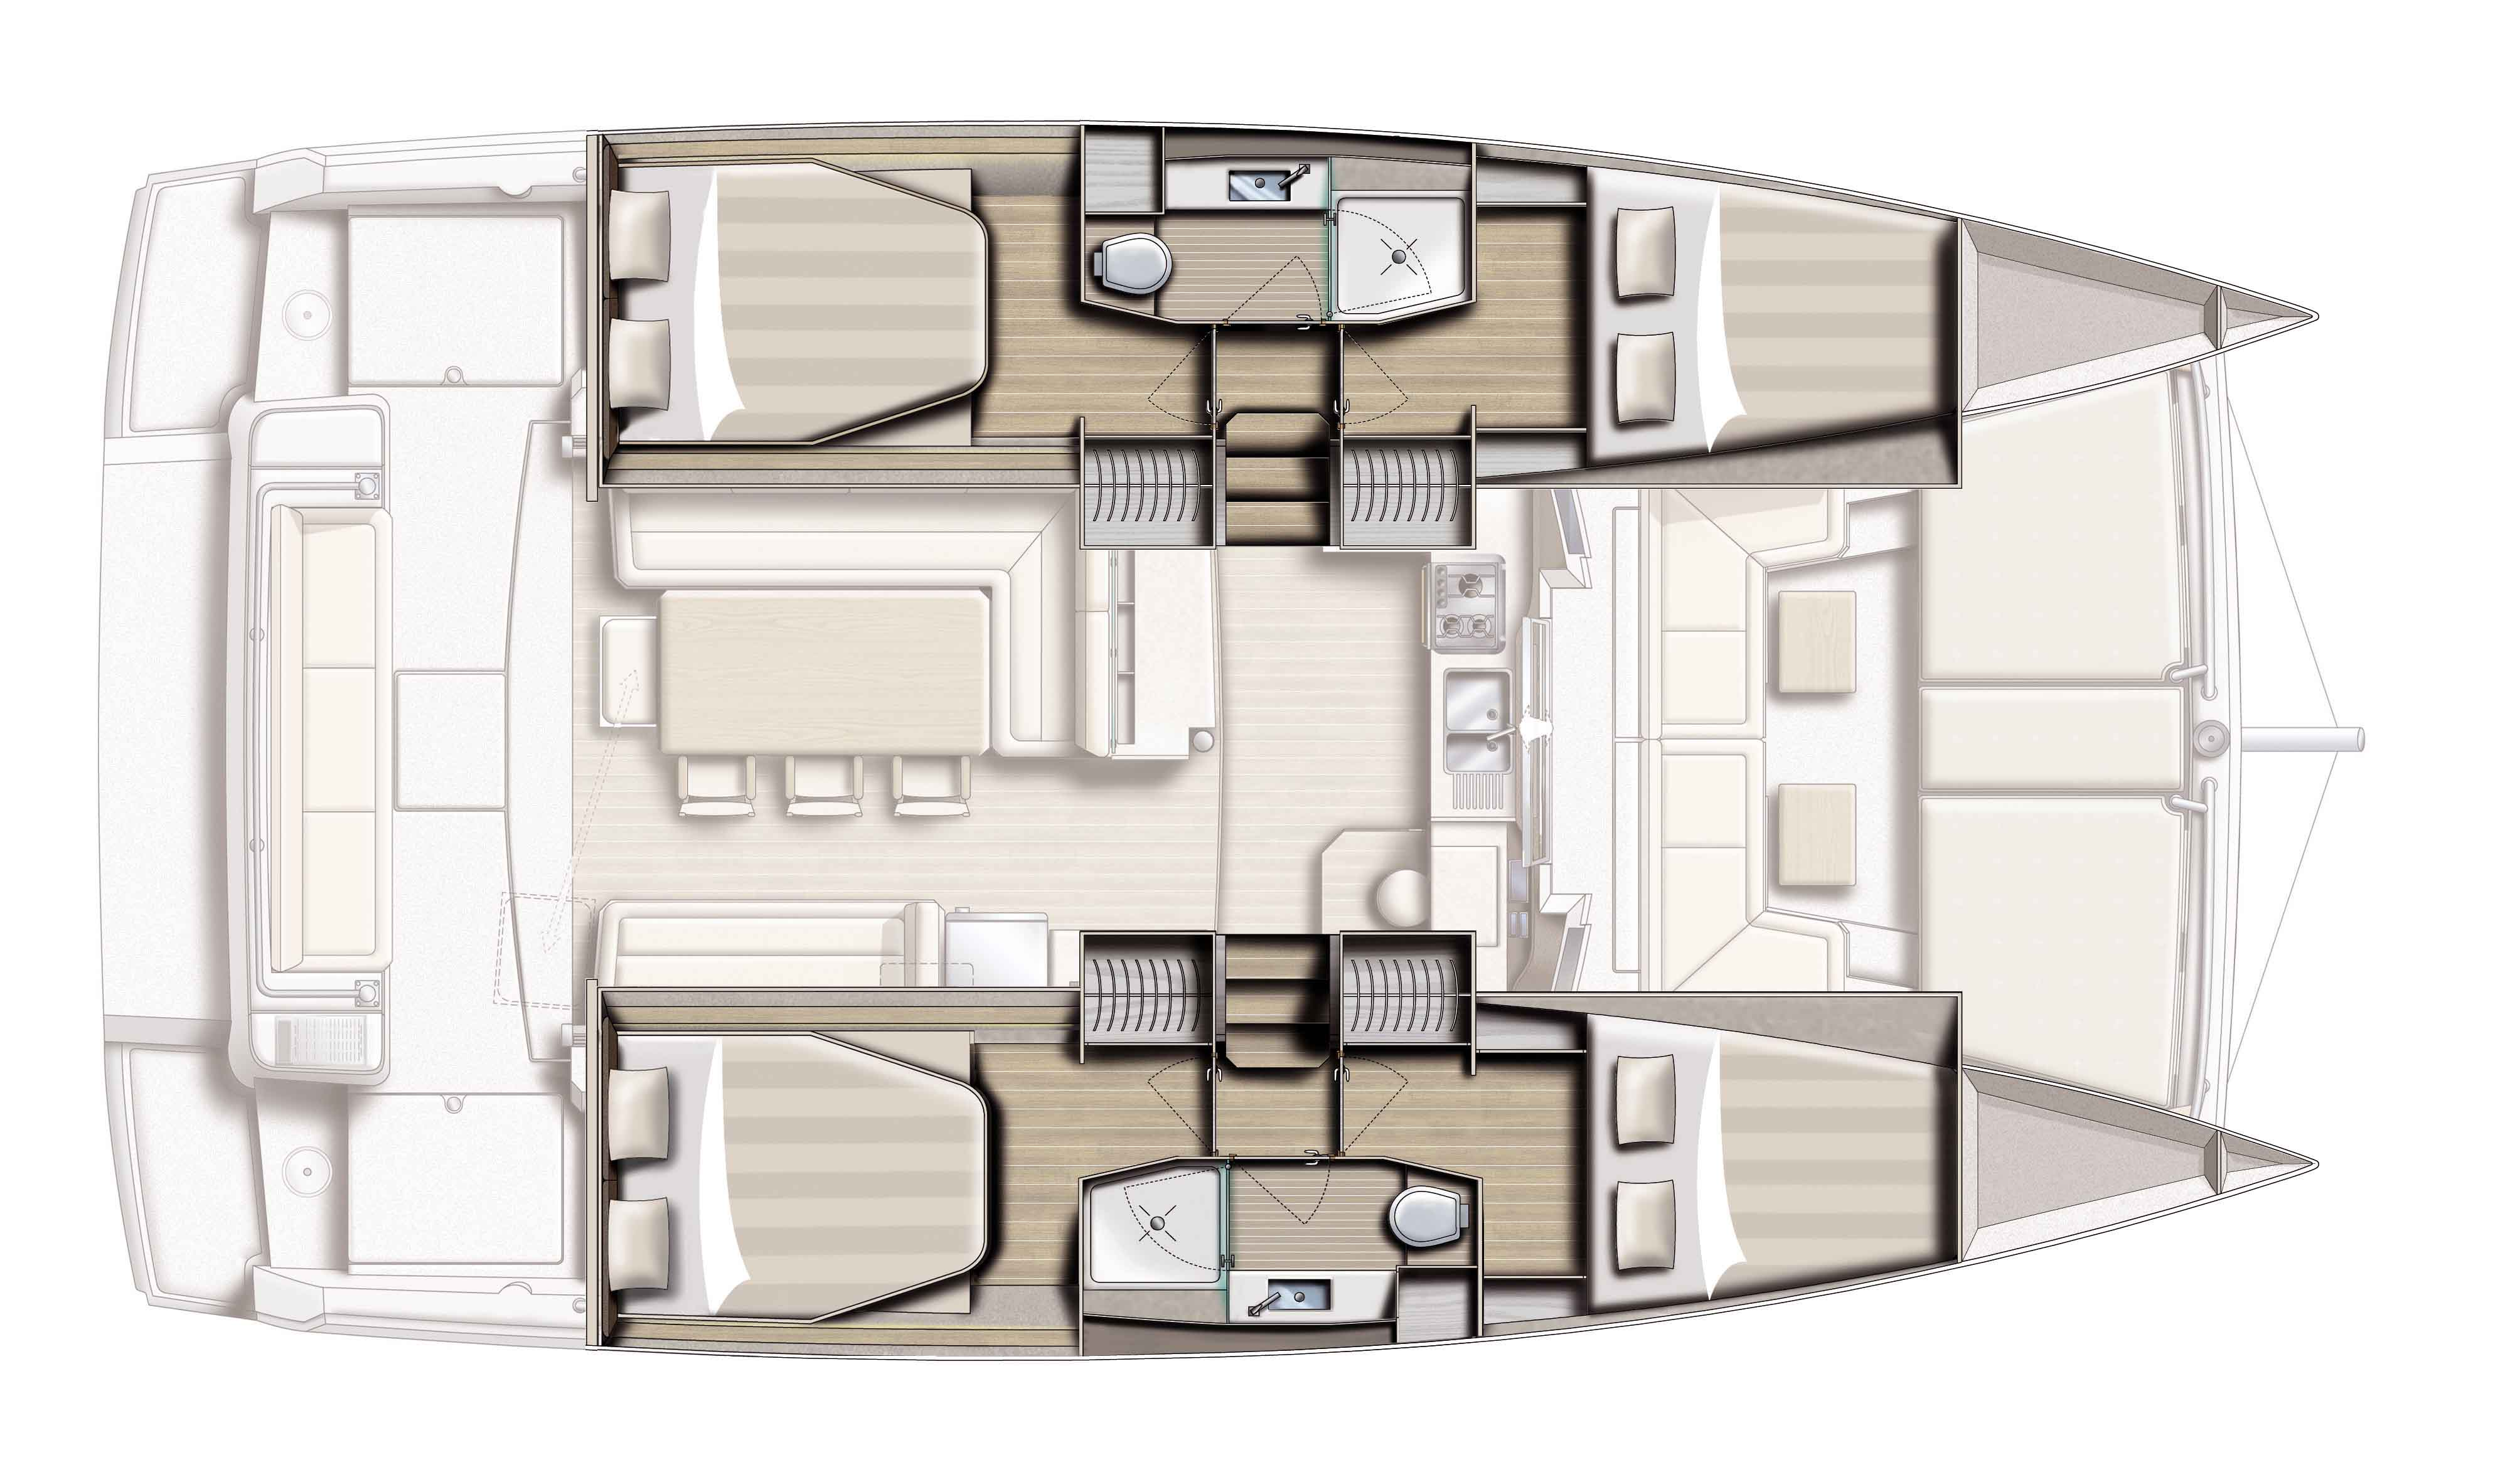 Catamaran BALI 4 1 - pictures, plans and features